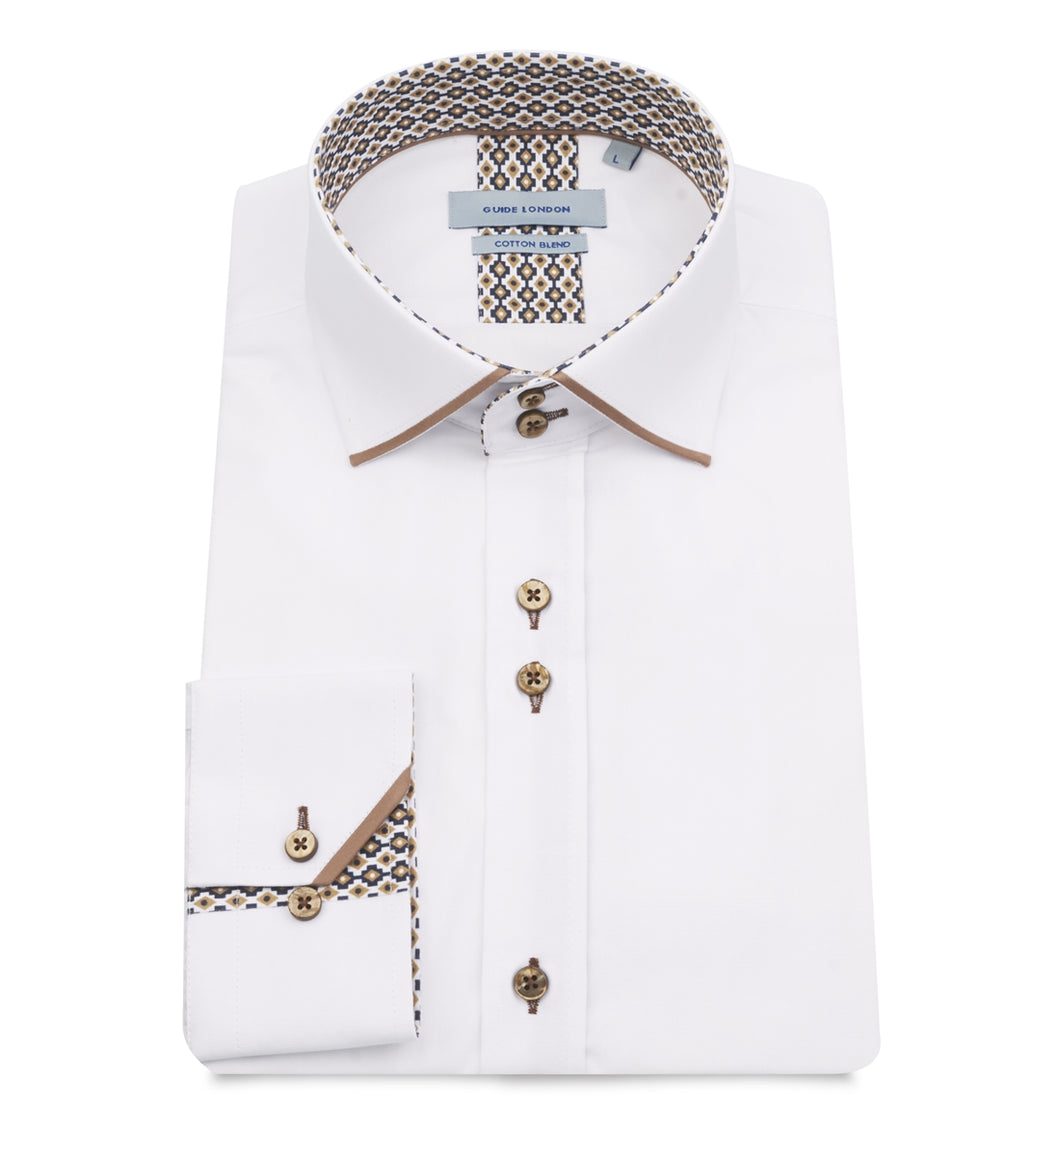 Guide London Collar and Cuff Trim Shirt White